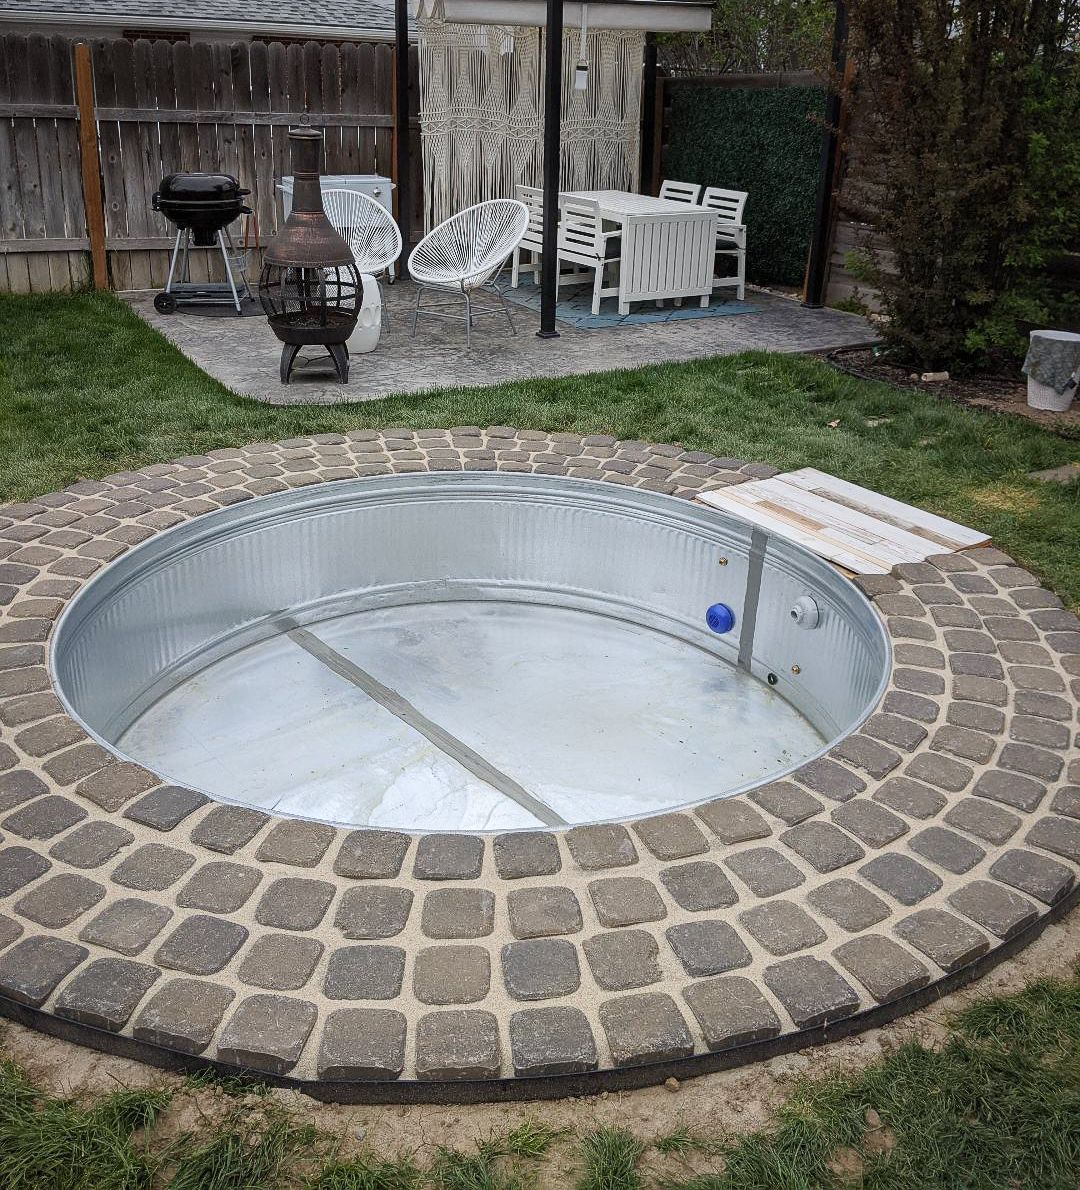 In Ground Stock Tank Pool And Hot Tub Ditching Normal Stock Tank Pool Diy Tank Pool Stock Tank Pool